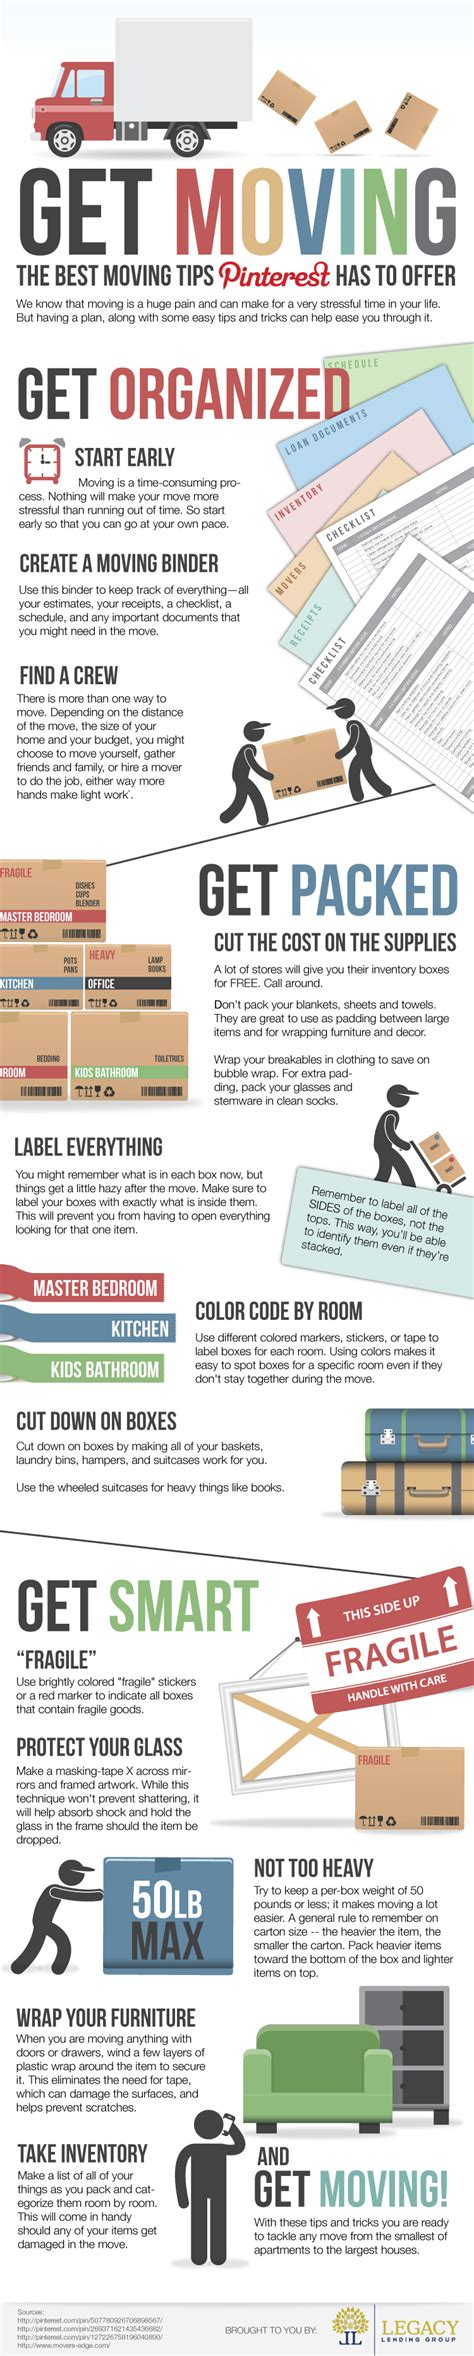 moving tips the best moving tips pinterest has to offer infographic